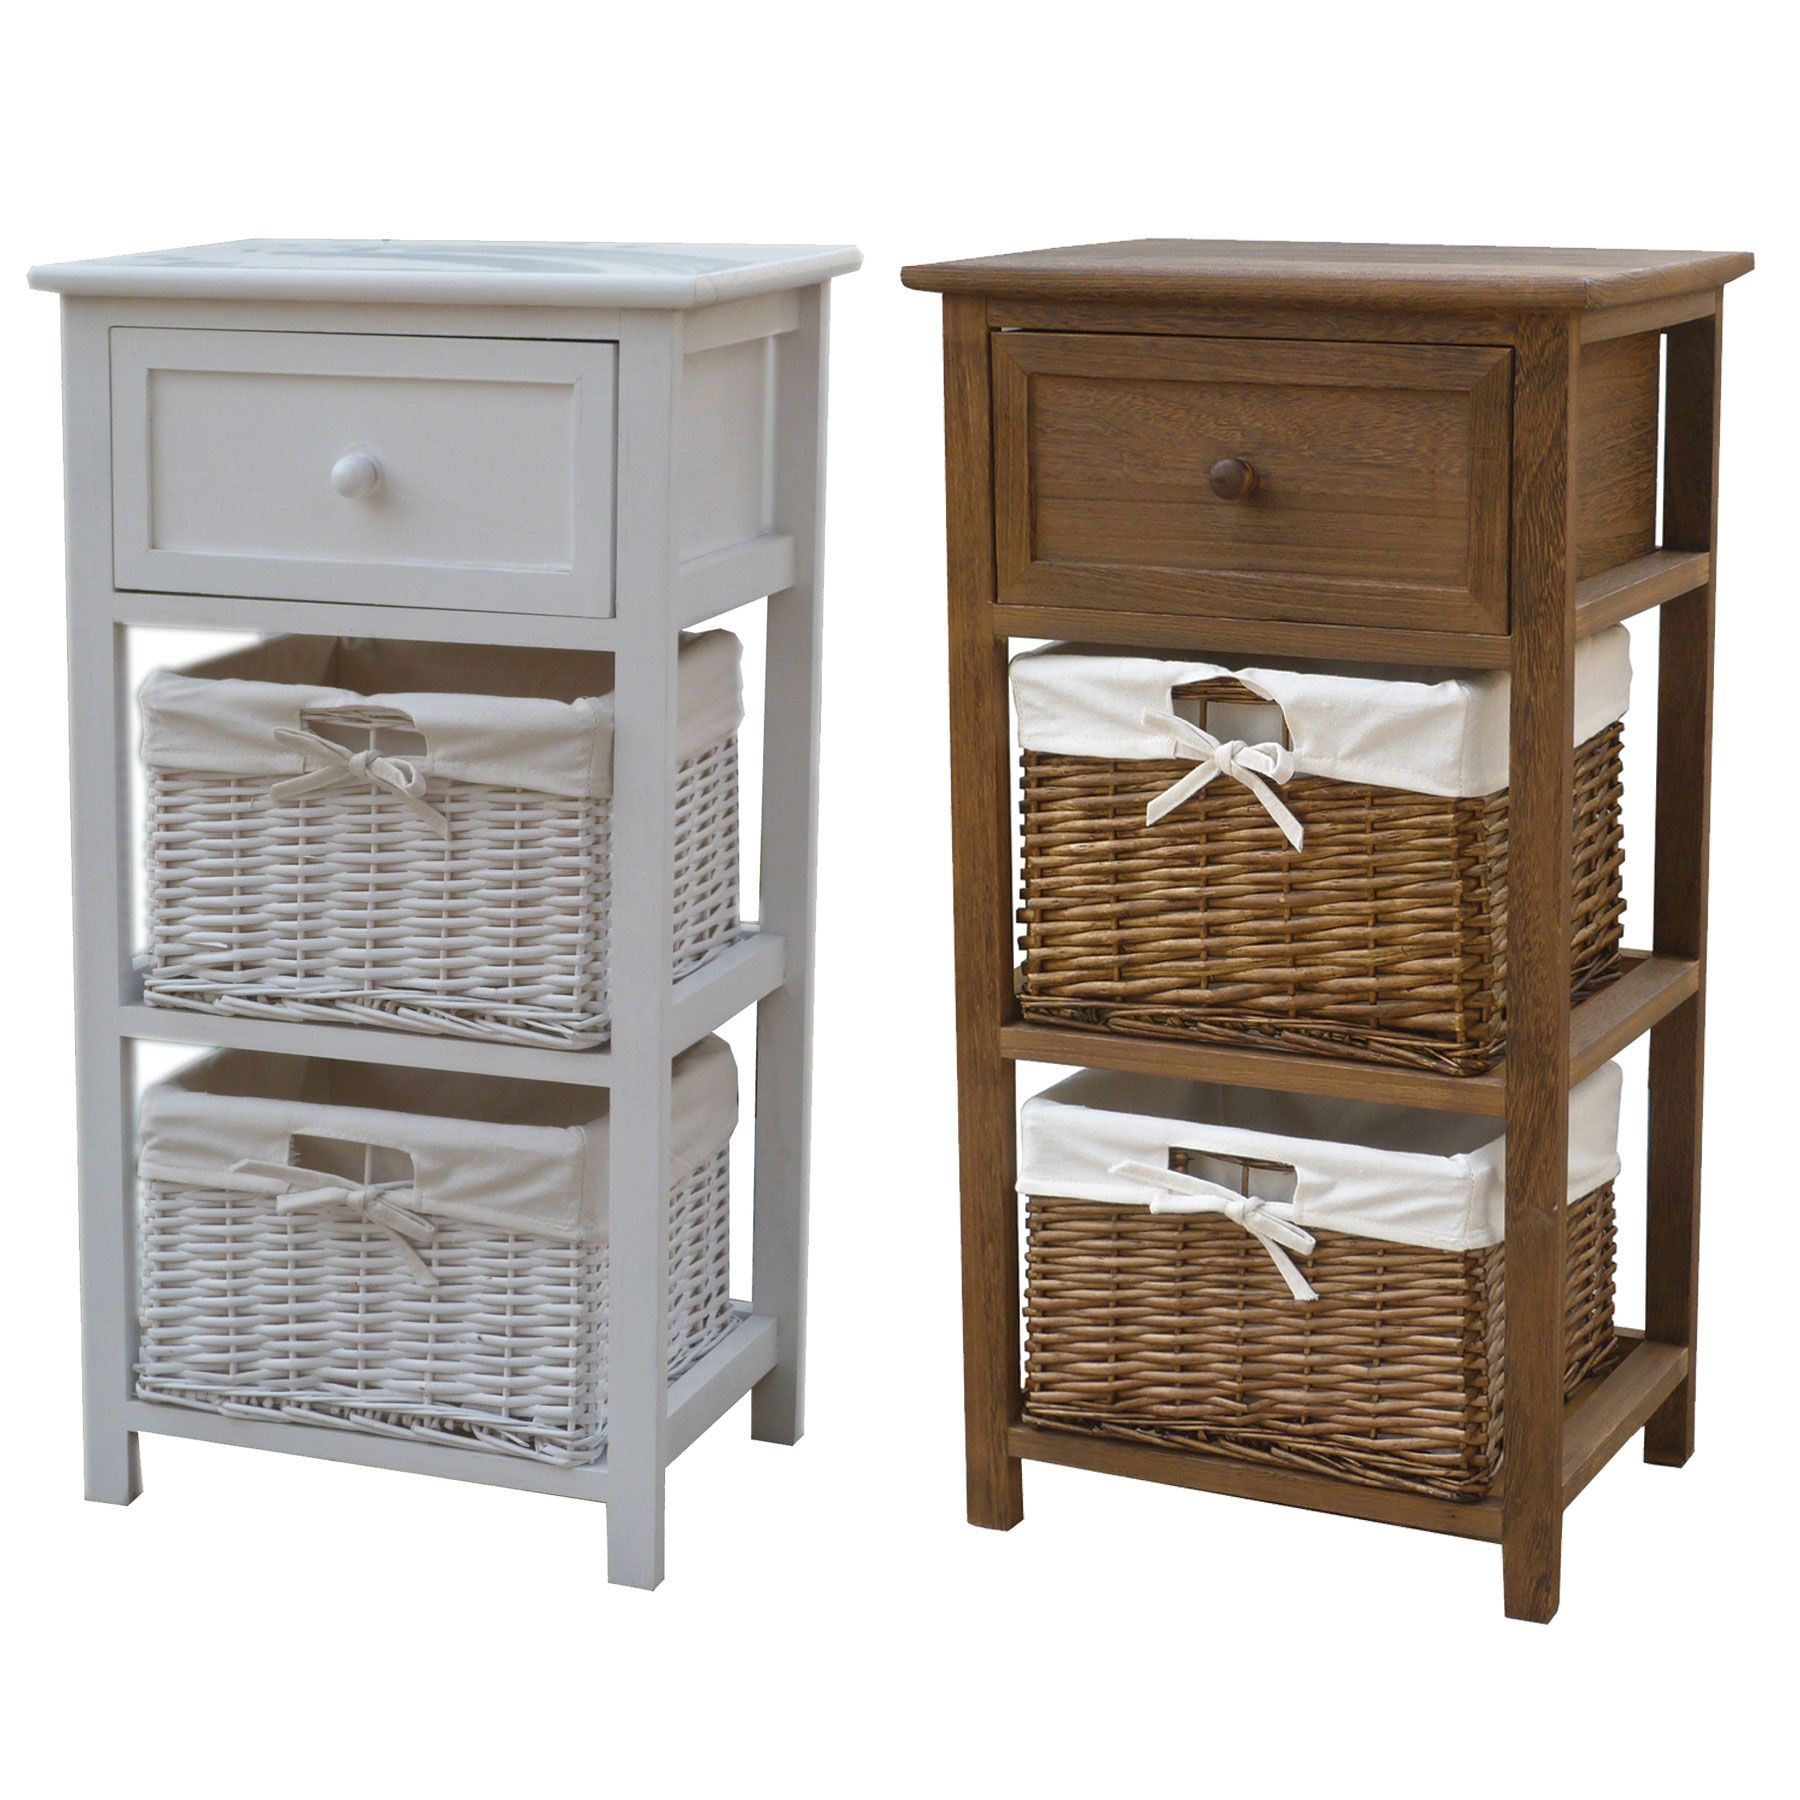 This Bentley Home Cosy Storage Unit In White Or Natural Wood Is